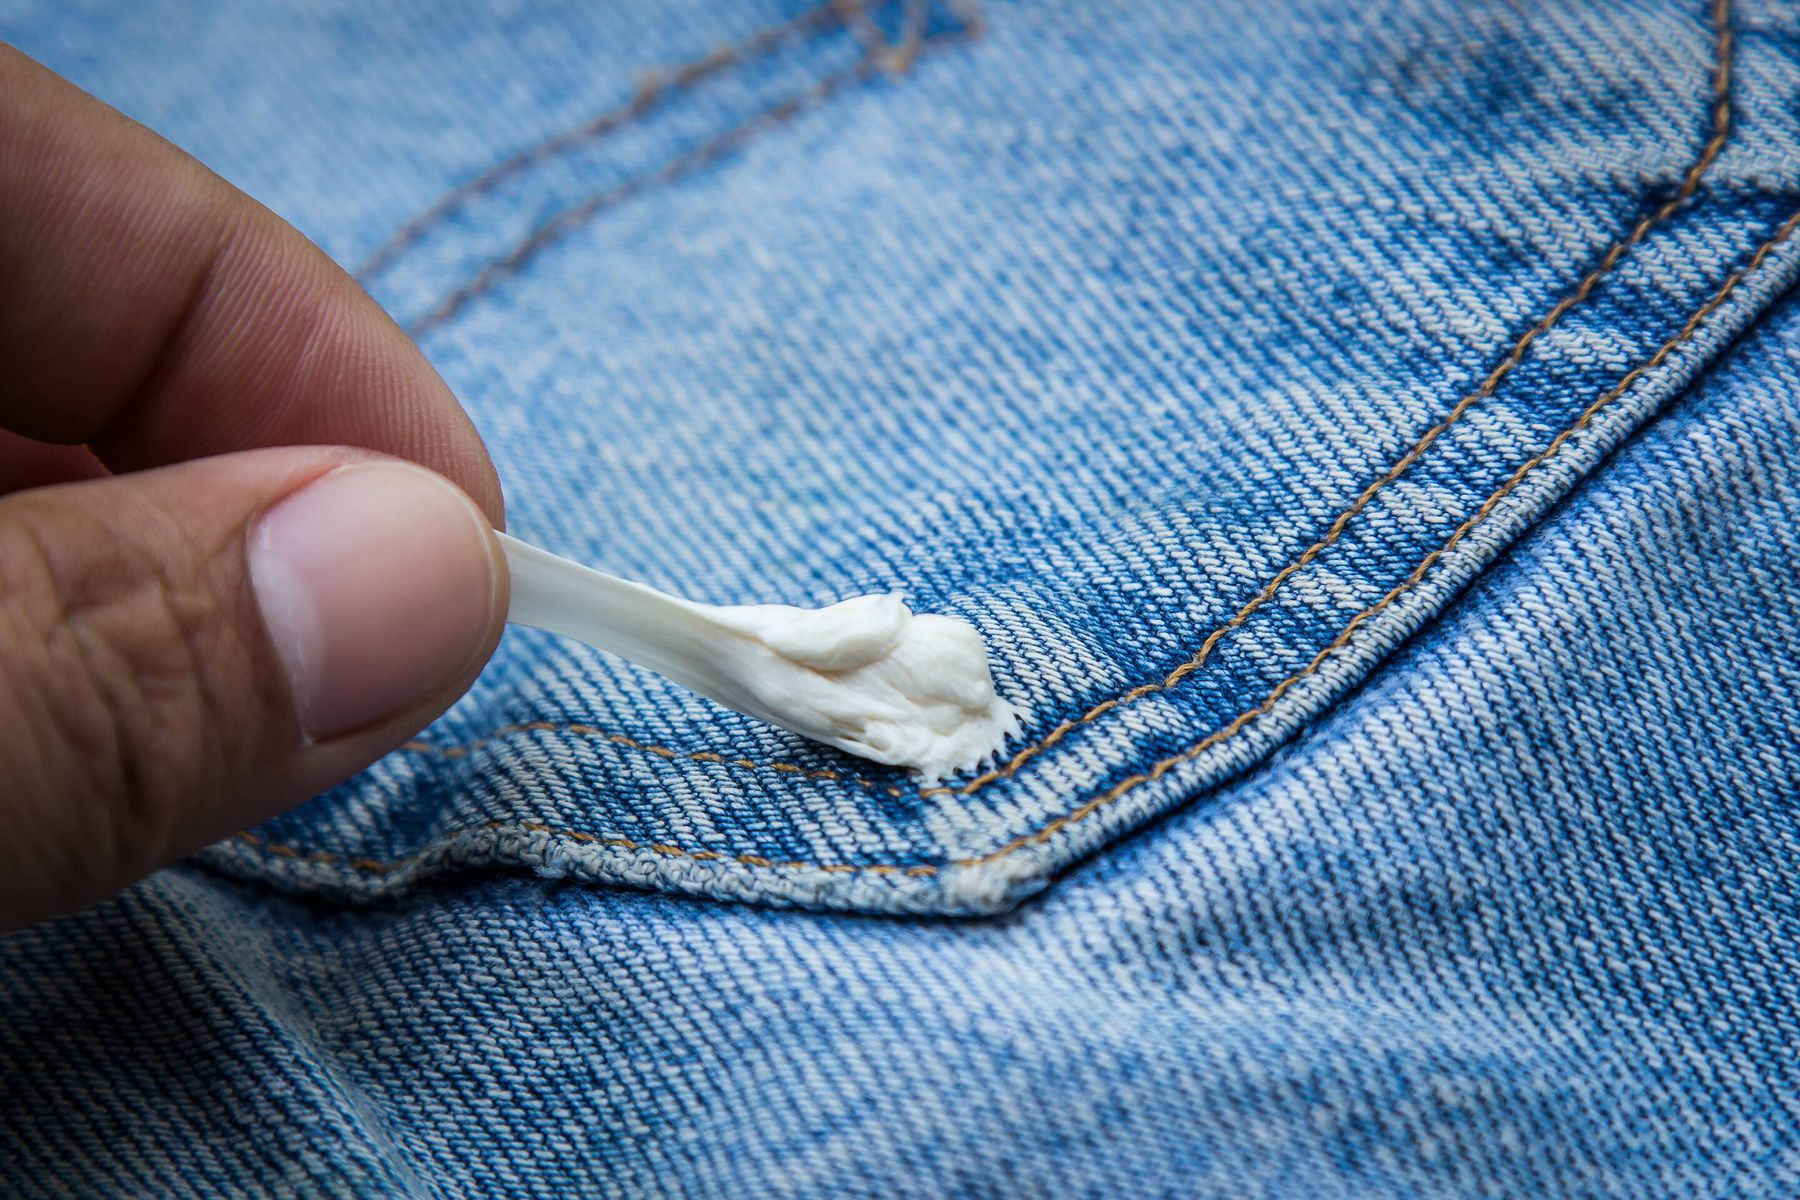 How to Remove Chewing Gum from your Clothes | Cleanipedia